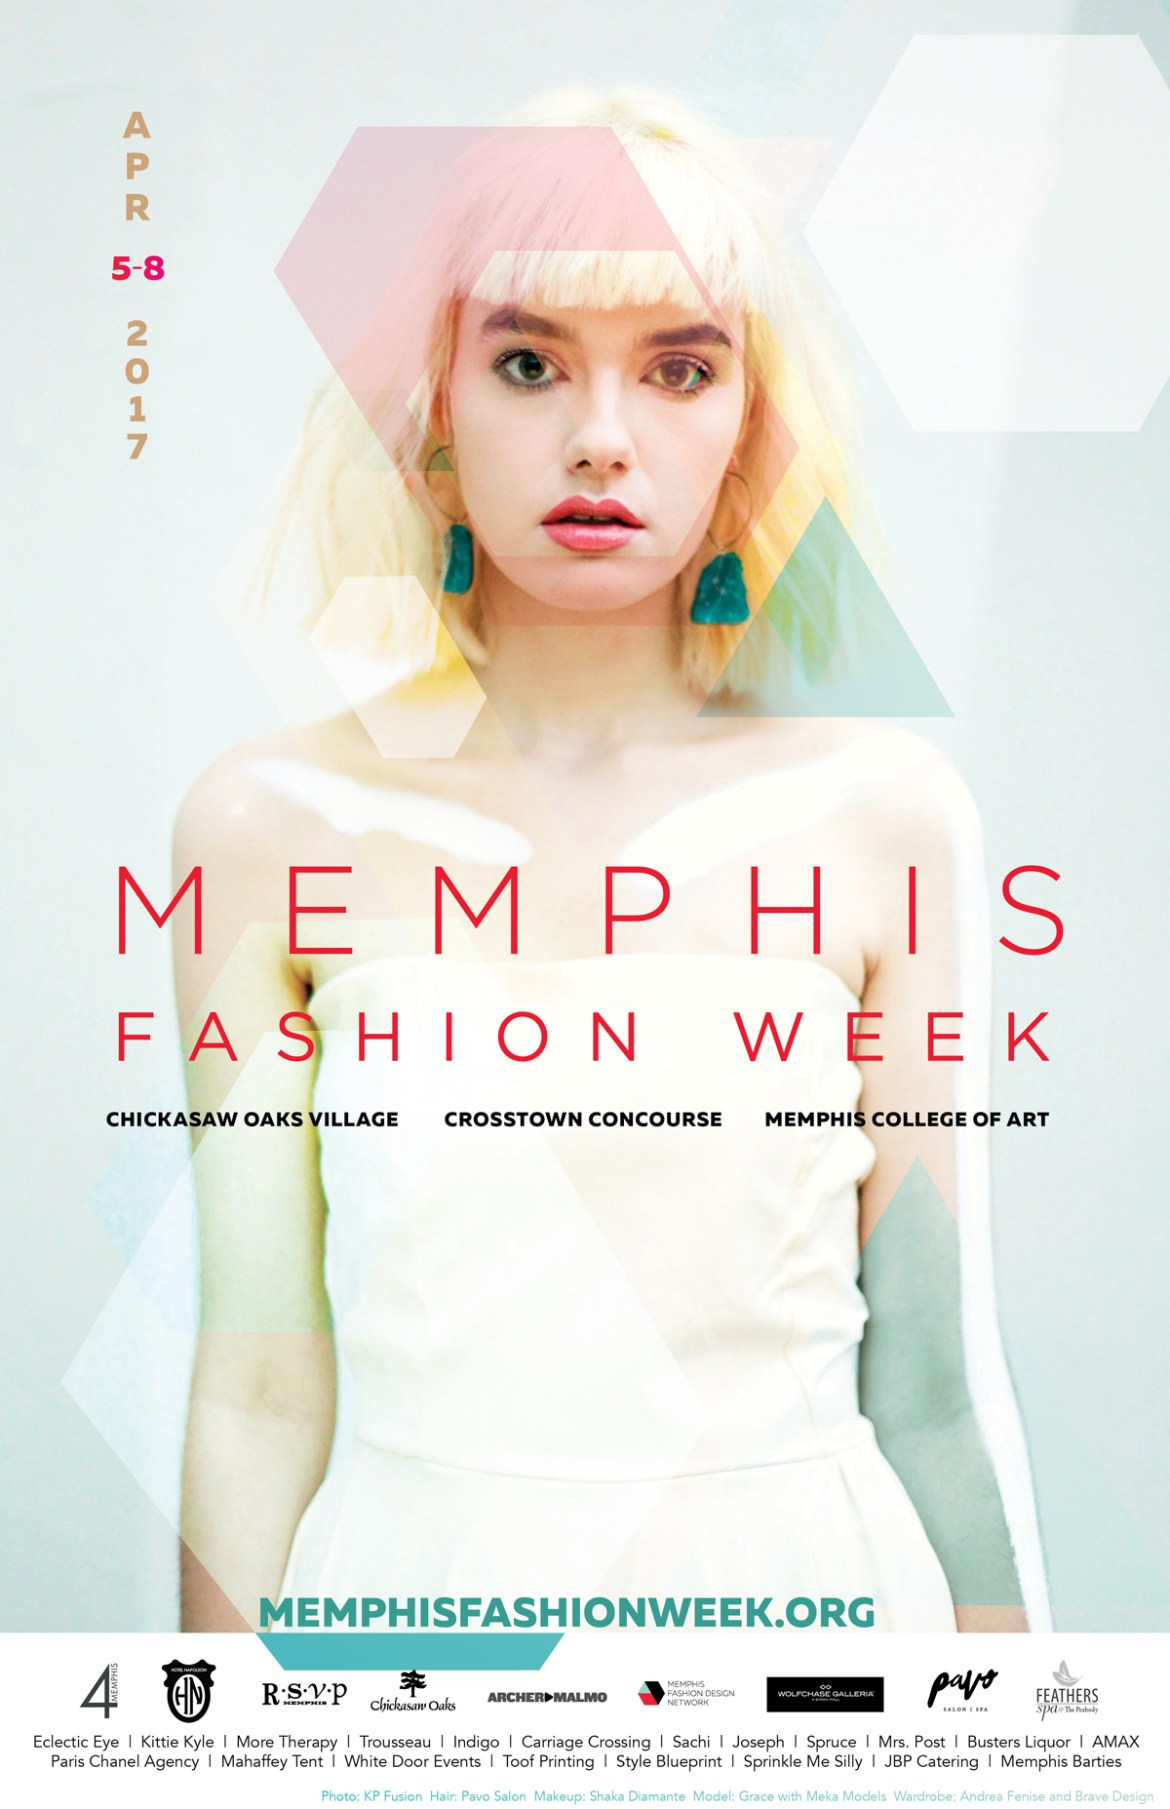 Showyourwork 2017 memphis fashion week campaign kp fusion ive been attending memphis fashion week since 2013 see the archives here so its one of the highlights of my year this year is a little different malvernweather Images